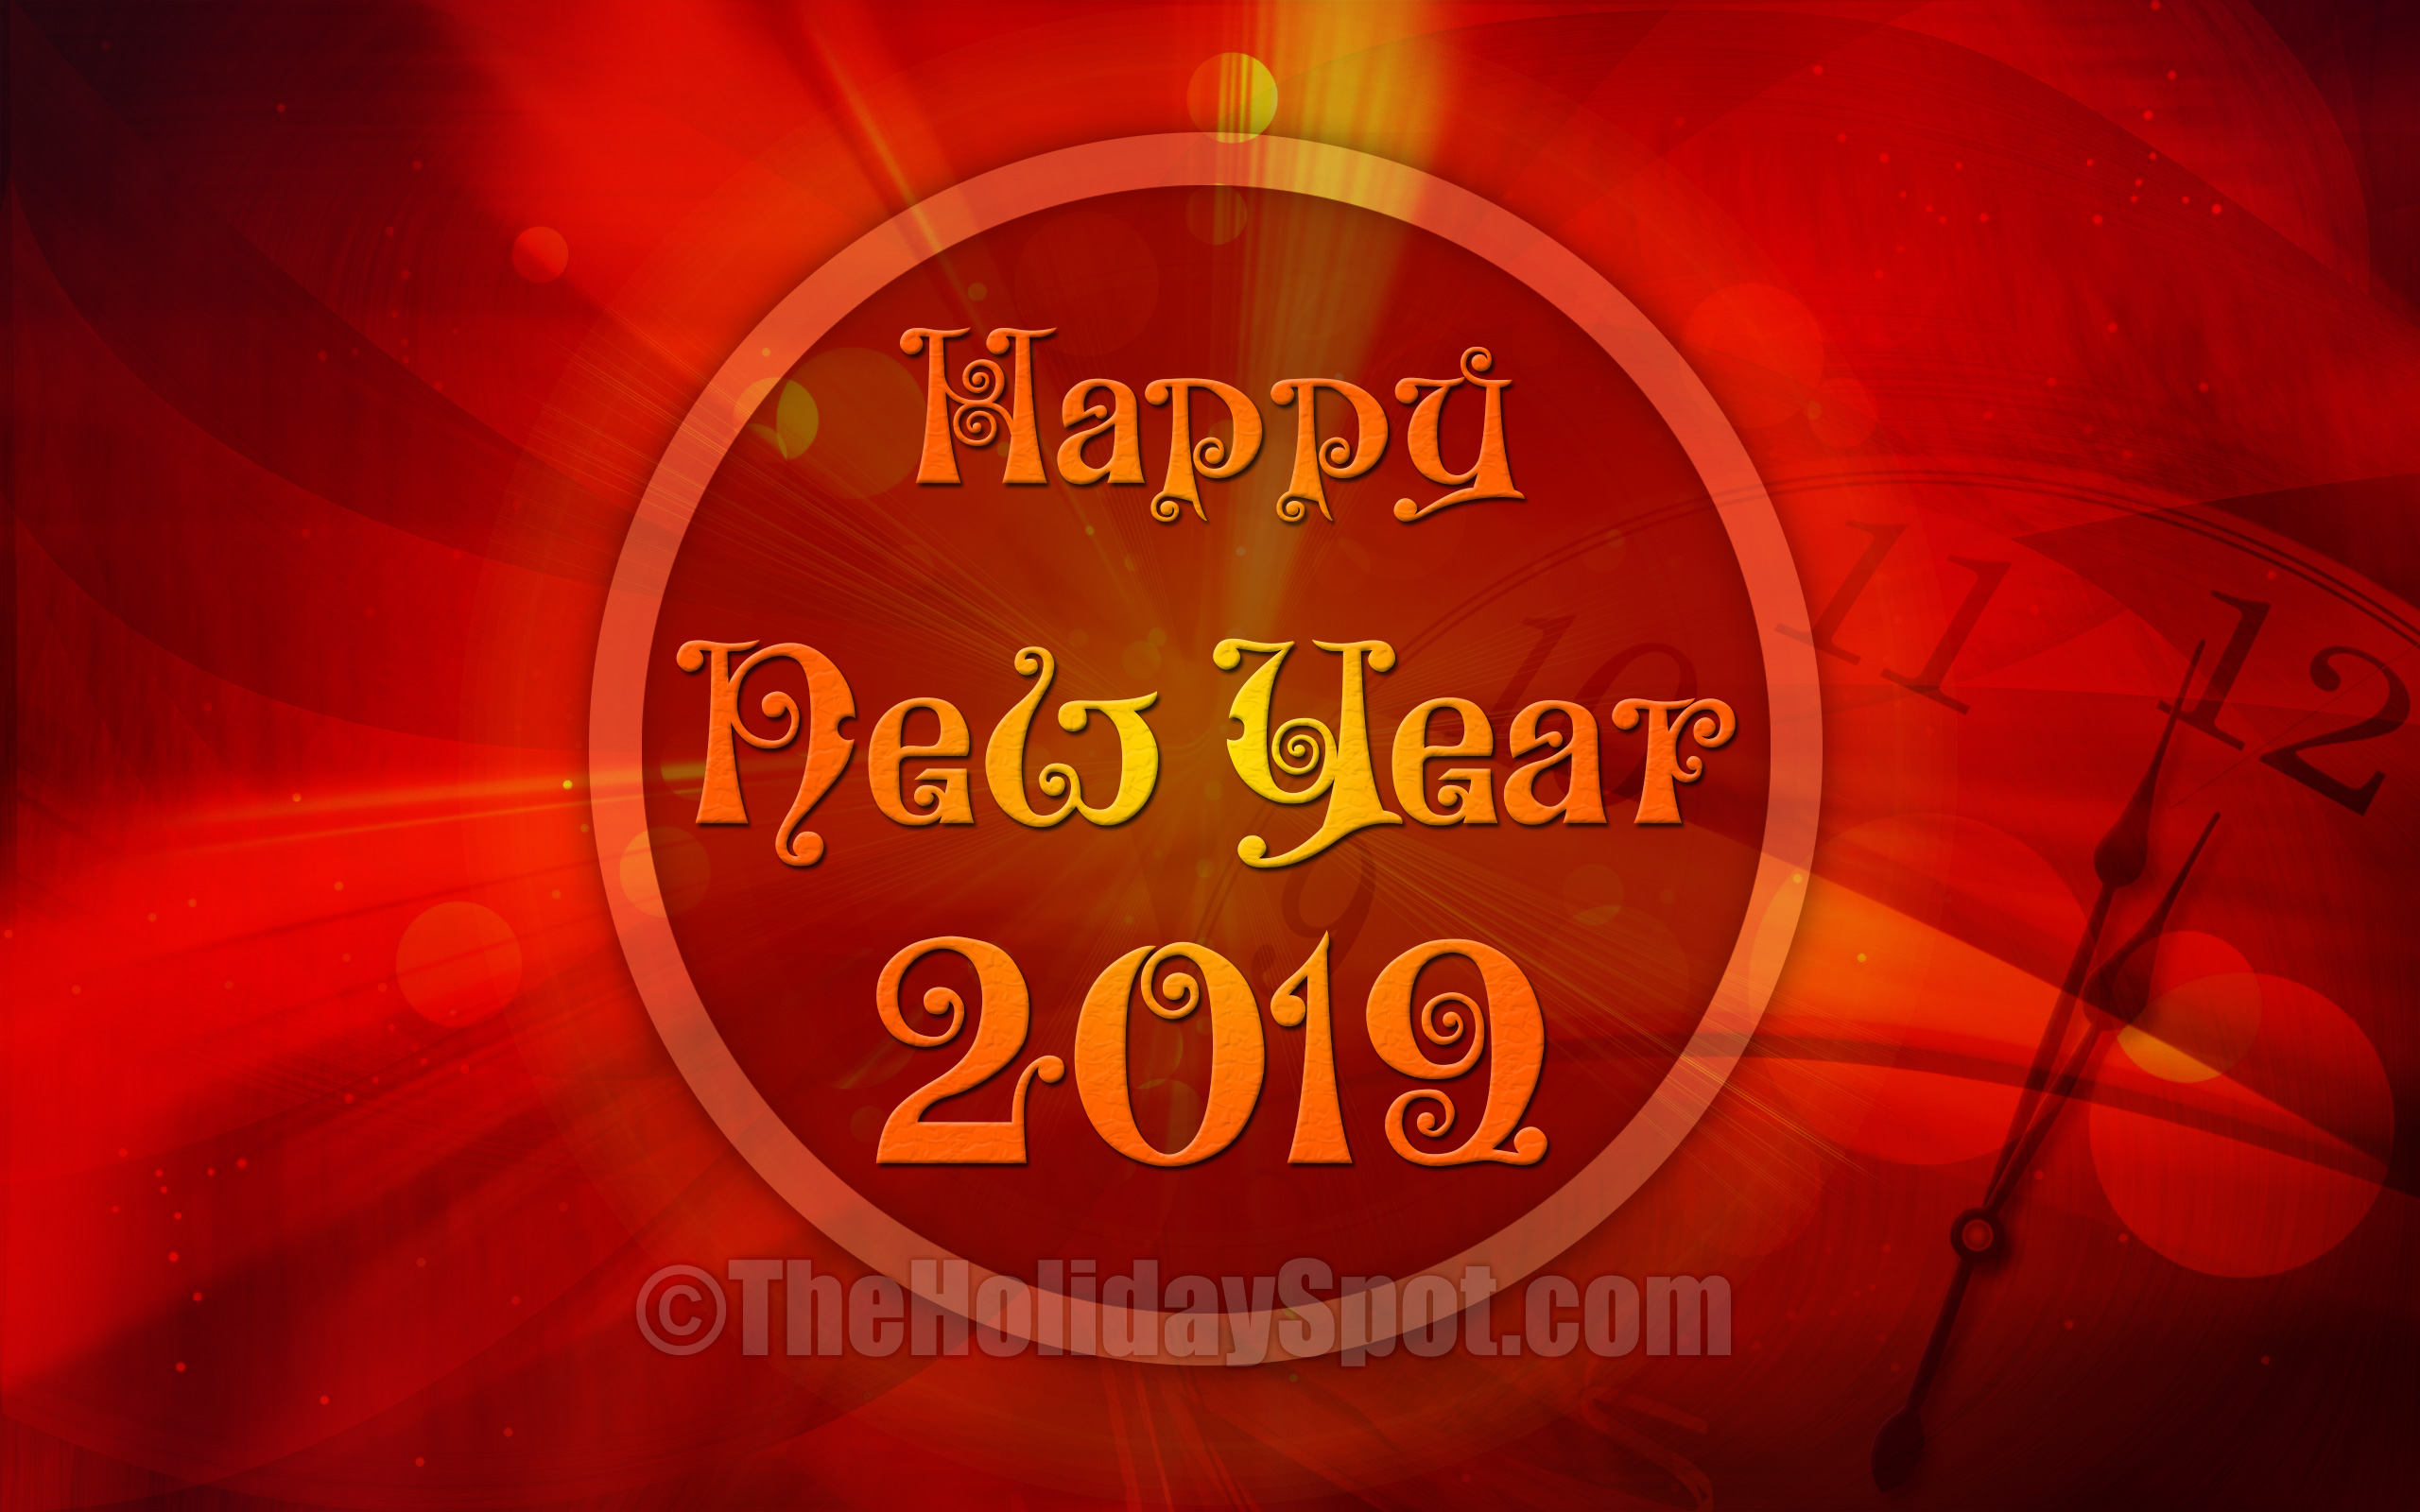 New Year Wallpaper - Happy New Year 2019 Screensaver , HD Wallpaper & Backgrounds